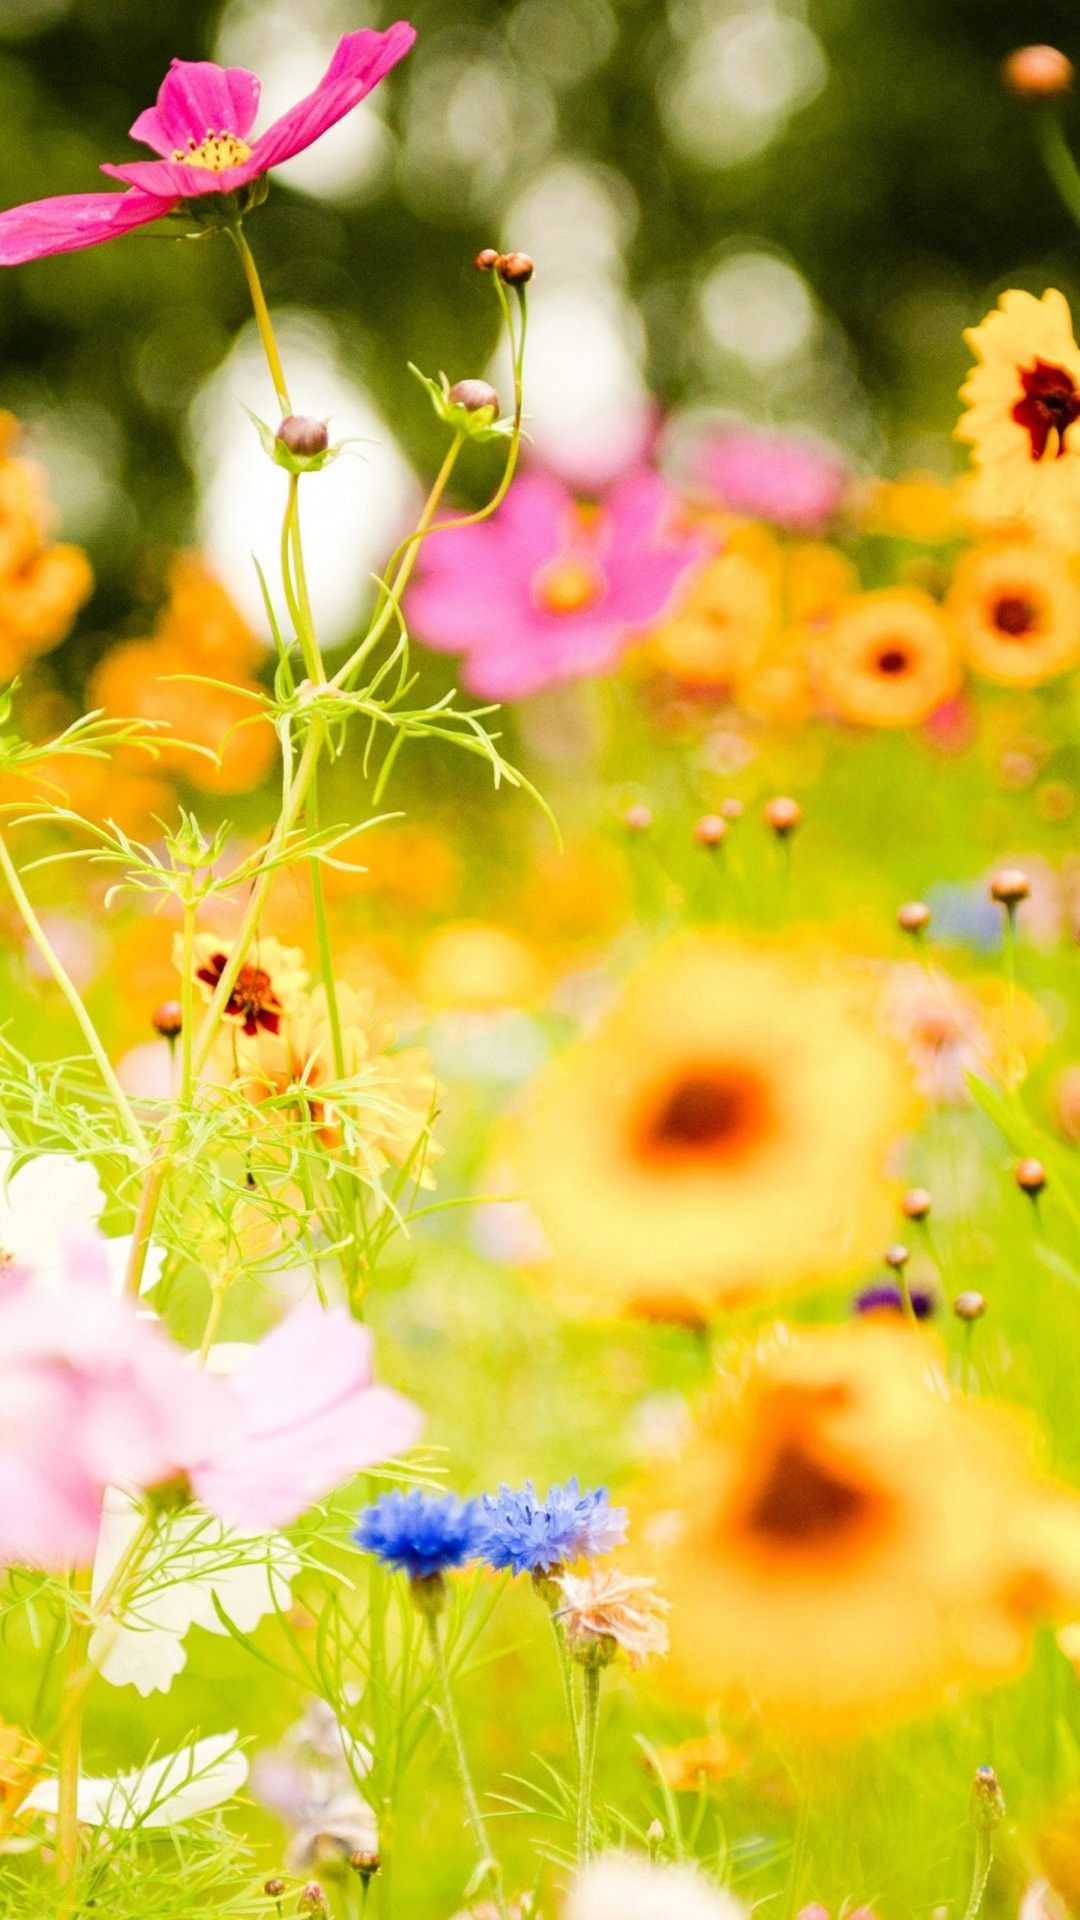 Flower Pictures iPhone 6 Plus Wallpaper 17025 Flowers